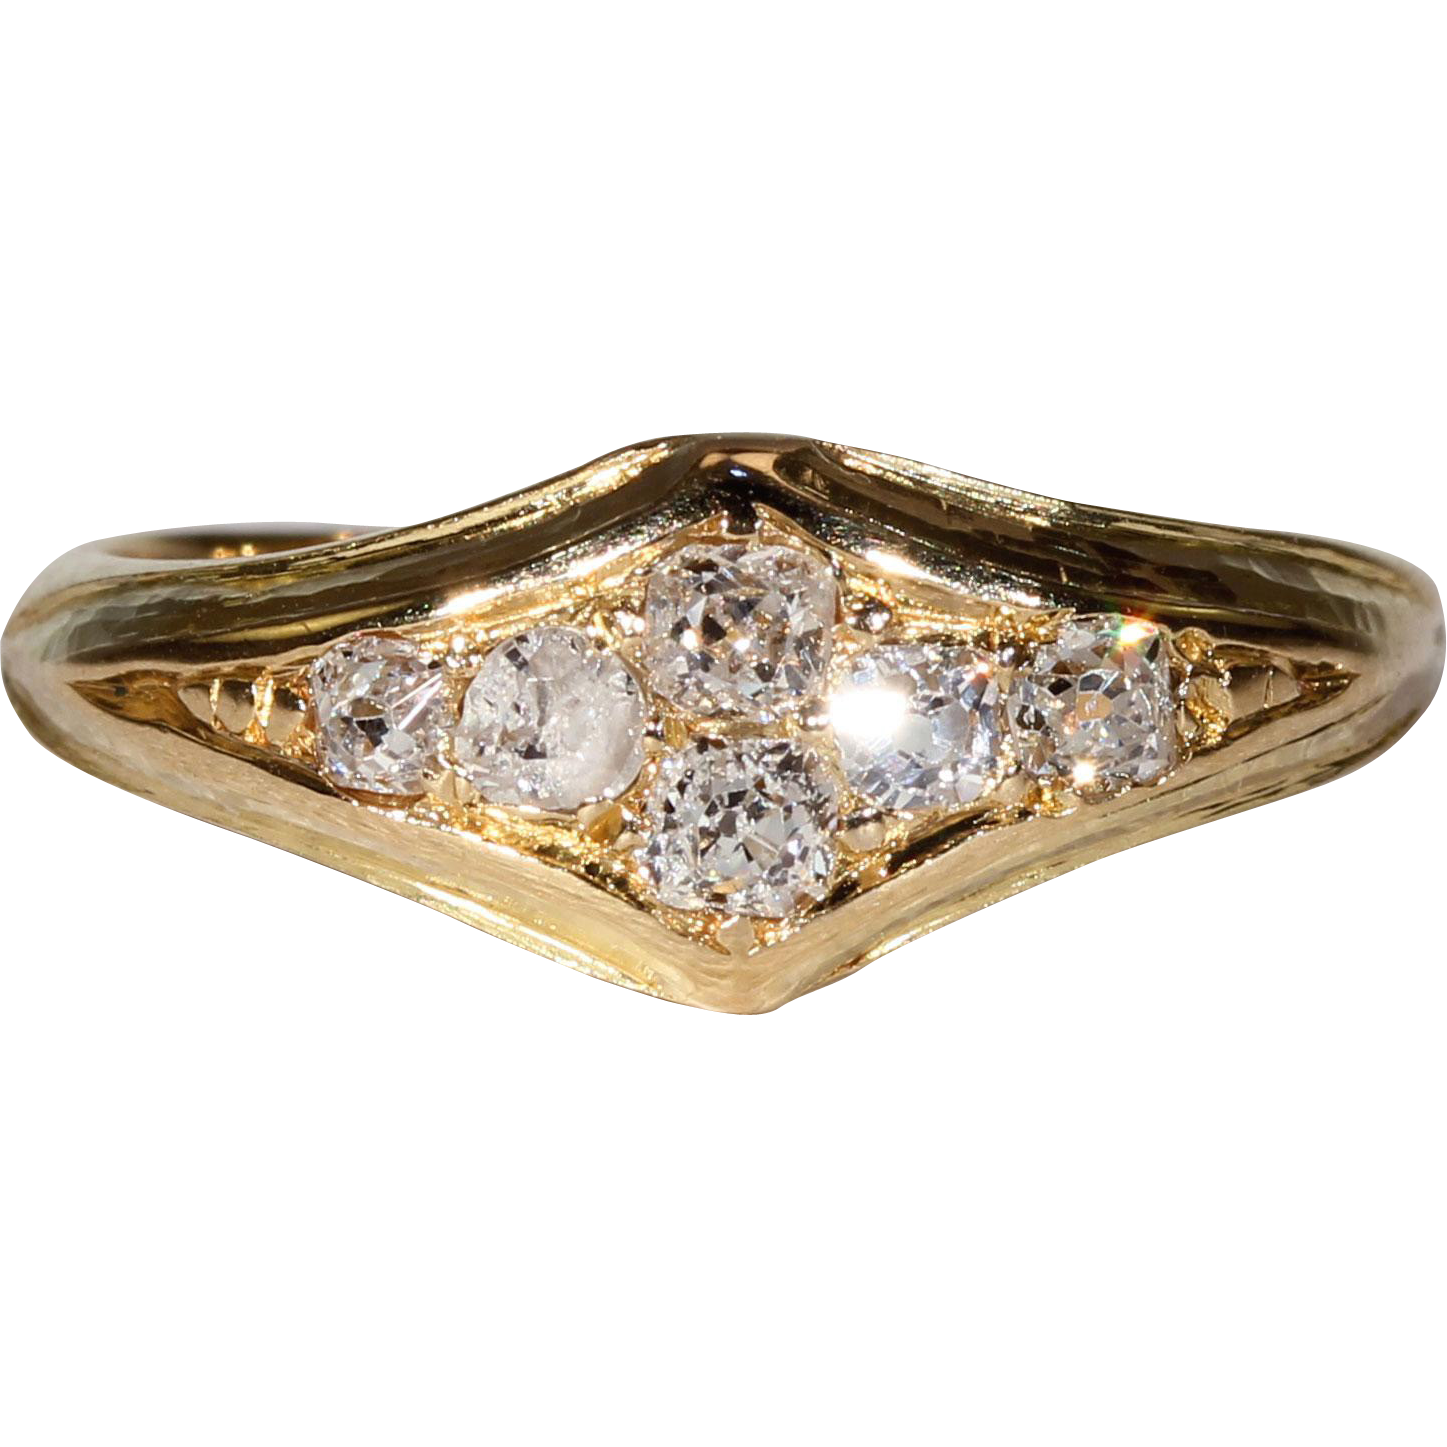 d0b839791 Vintage Art Deco Diamond Ring 18k Gold Hallmarked 1927 - Victoria Sterling Antique  Jewelry